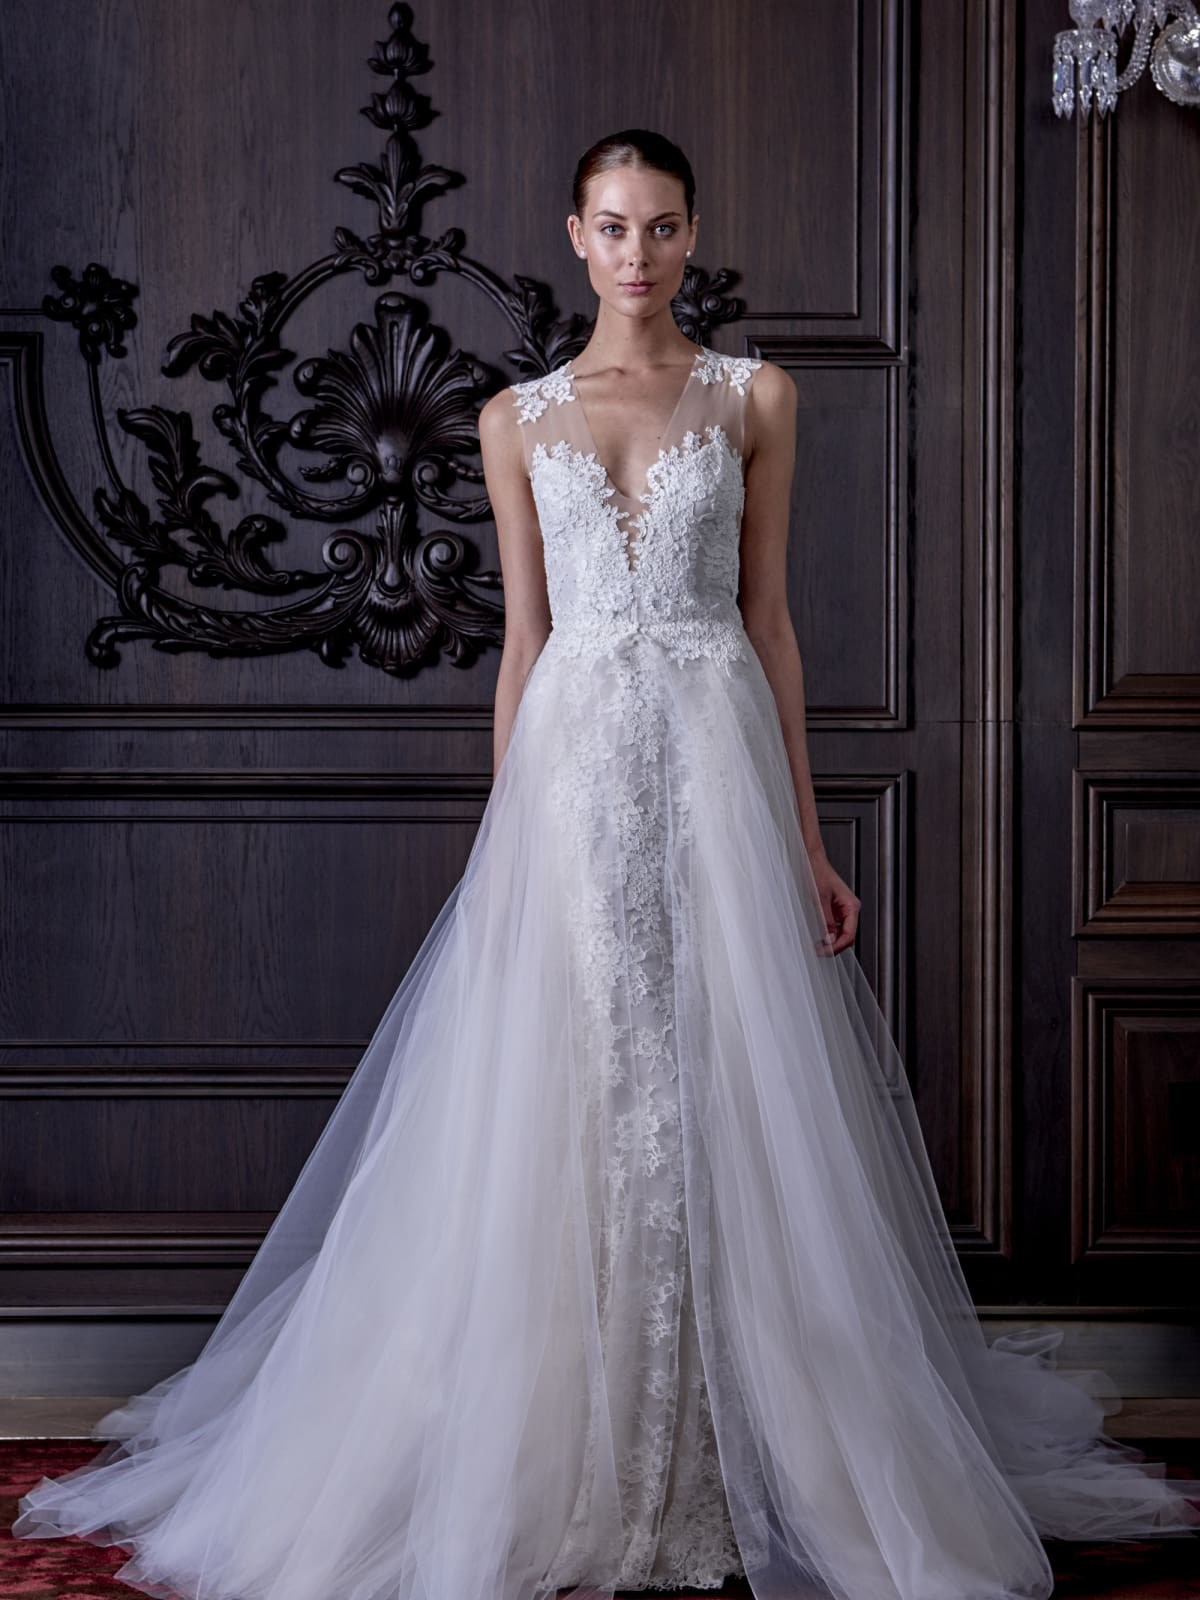 Top wedding gown trends: How to find the perfect look for the big ...